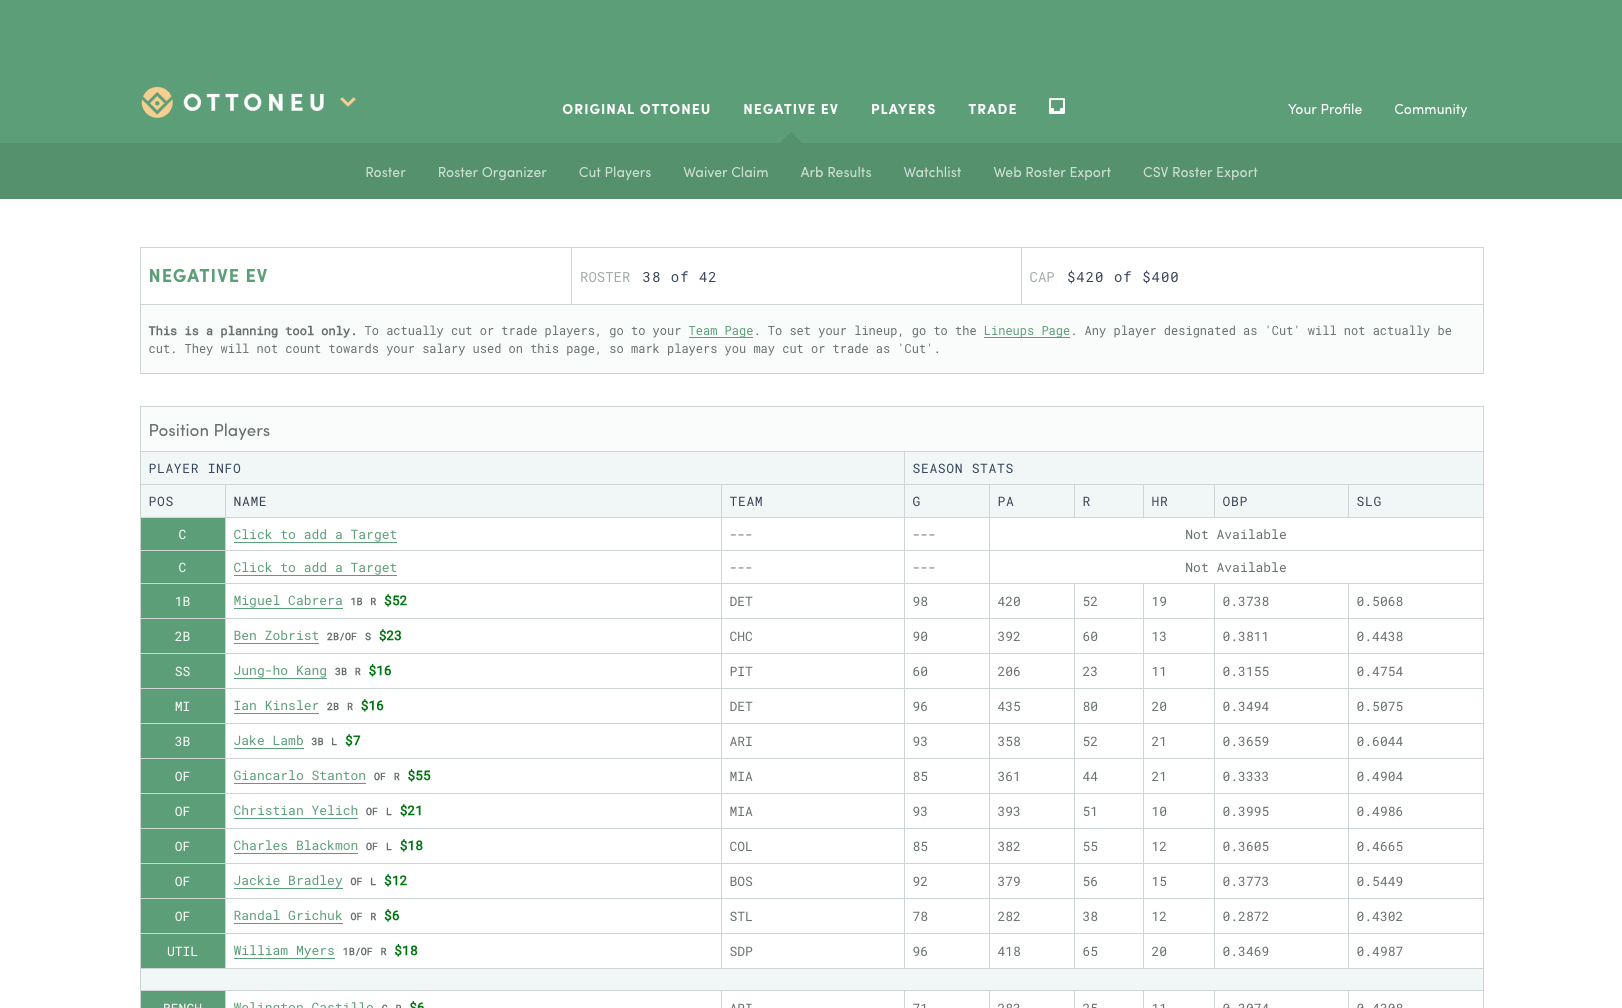 A screenshot of the baseball team page with a table of players and stats